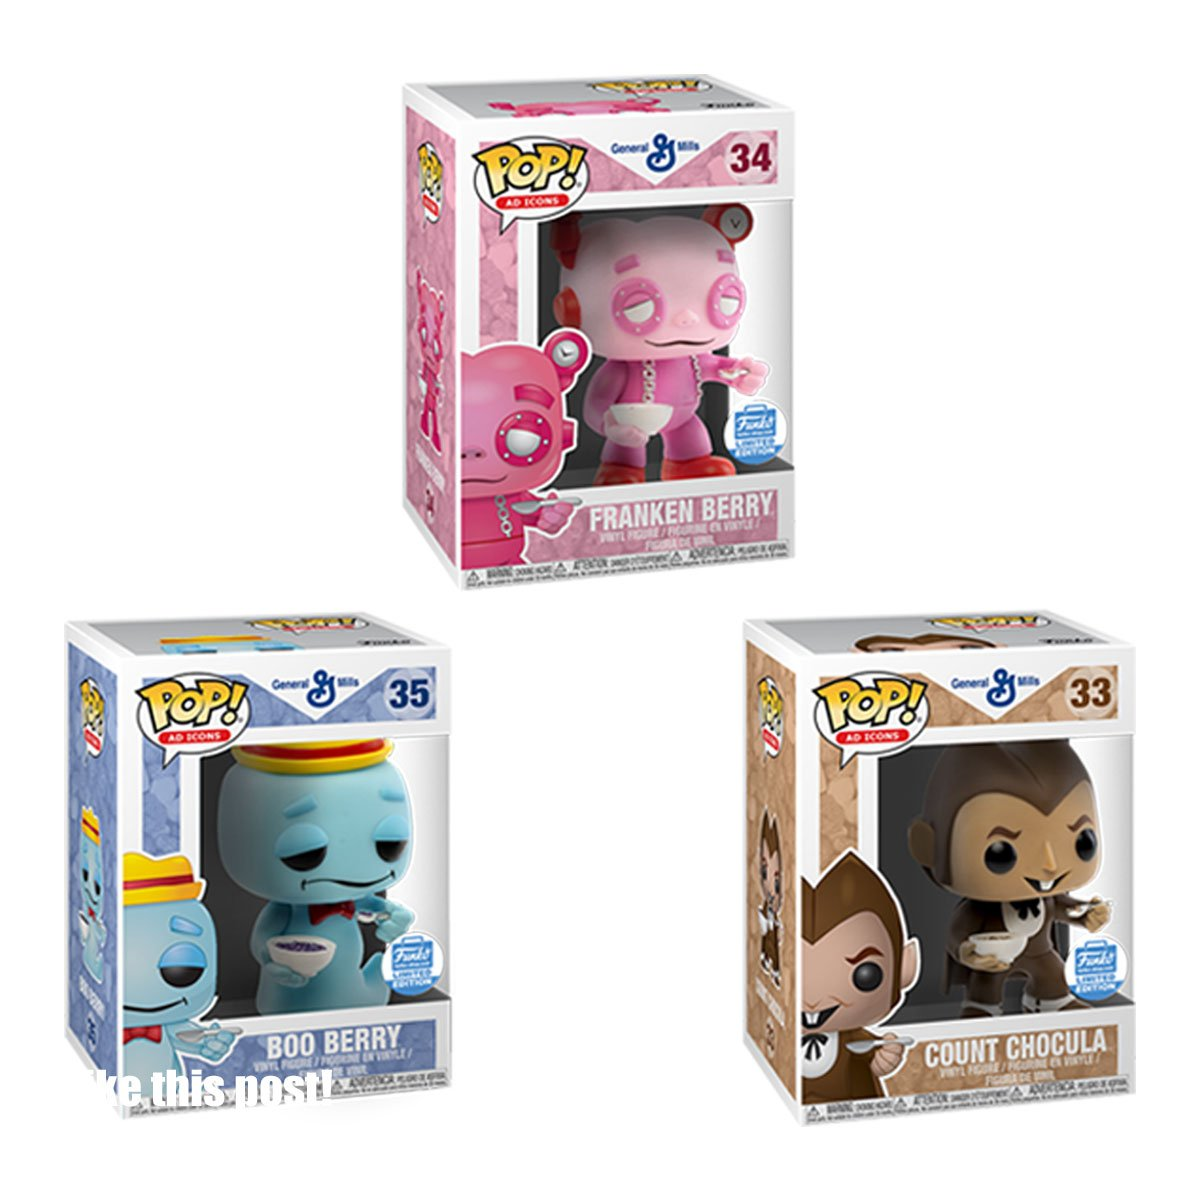 RT & follow @OriginalFunko for a chance to win a Funko Shop Exclusive Pop! Ad Icons: Cereal Monsters 3-Pack Bundle! https://t.co/B5yNtYxa9G